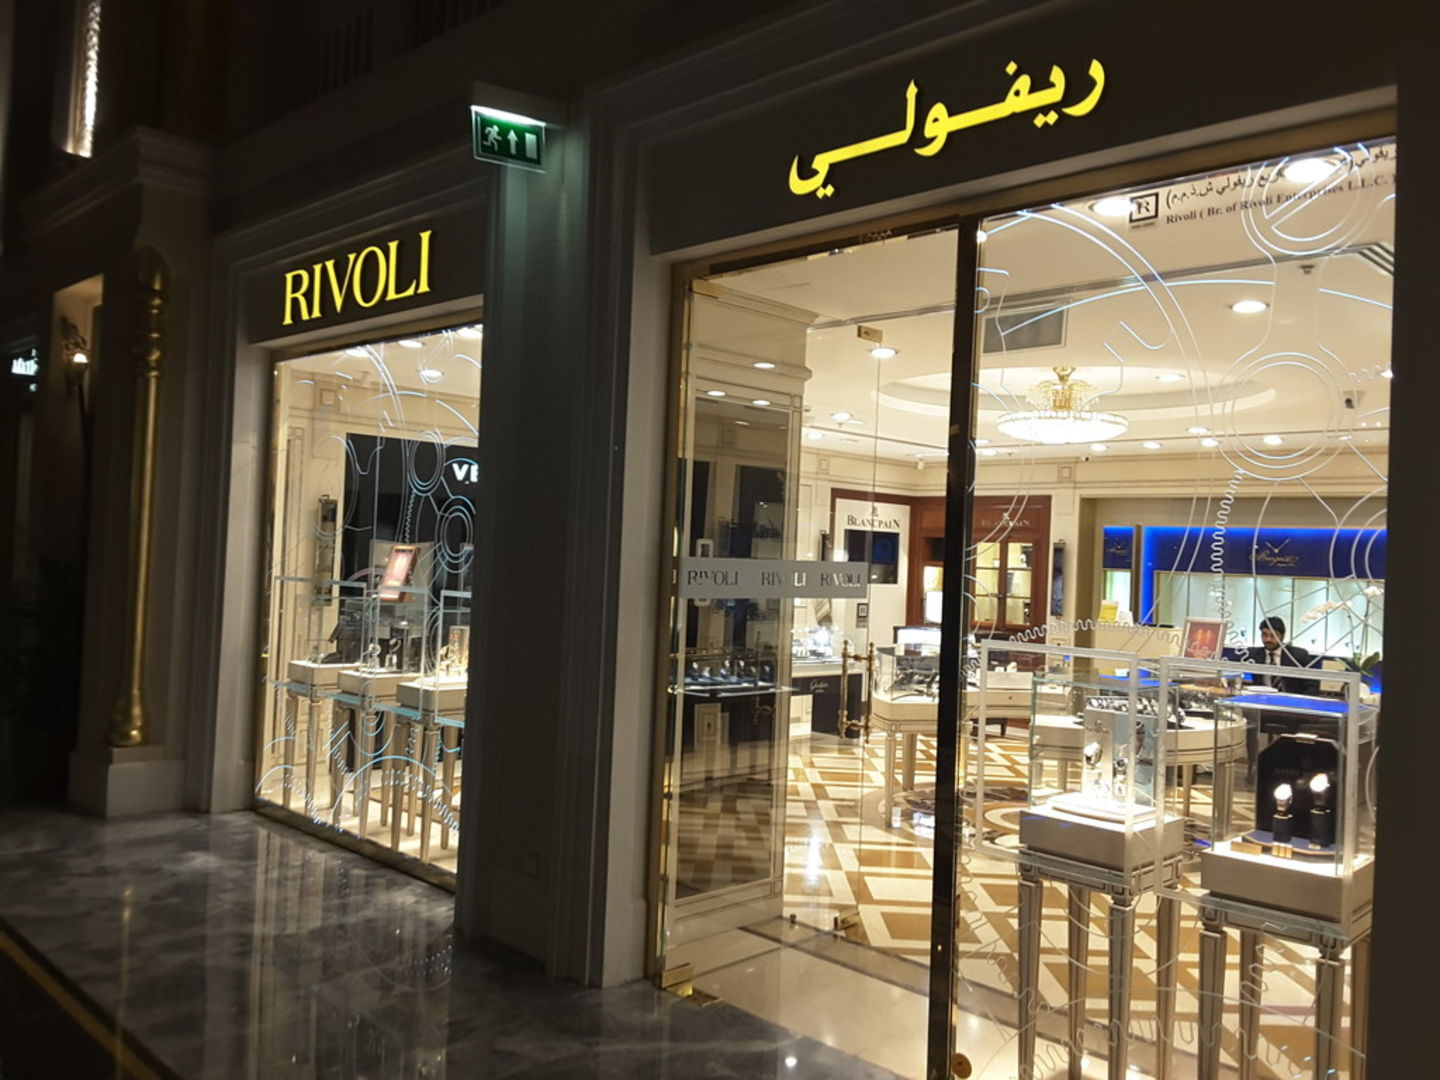 HiDubai-business-rivoli-enterprises-shopping-watches-eyewear-the-palm-jumeirah-nakhlat-jumeirah-dubai-2